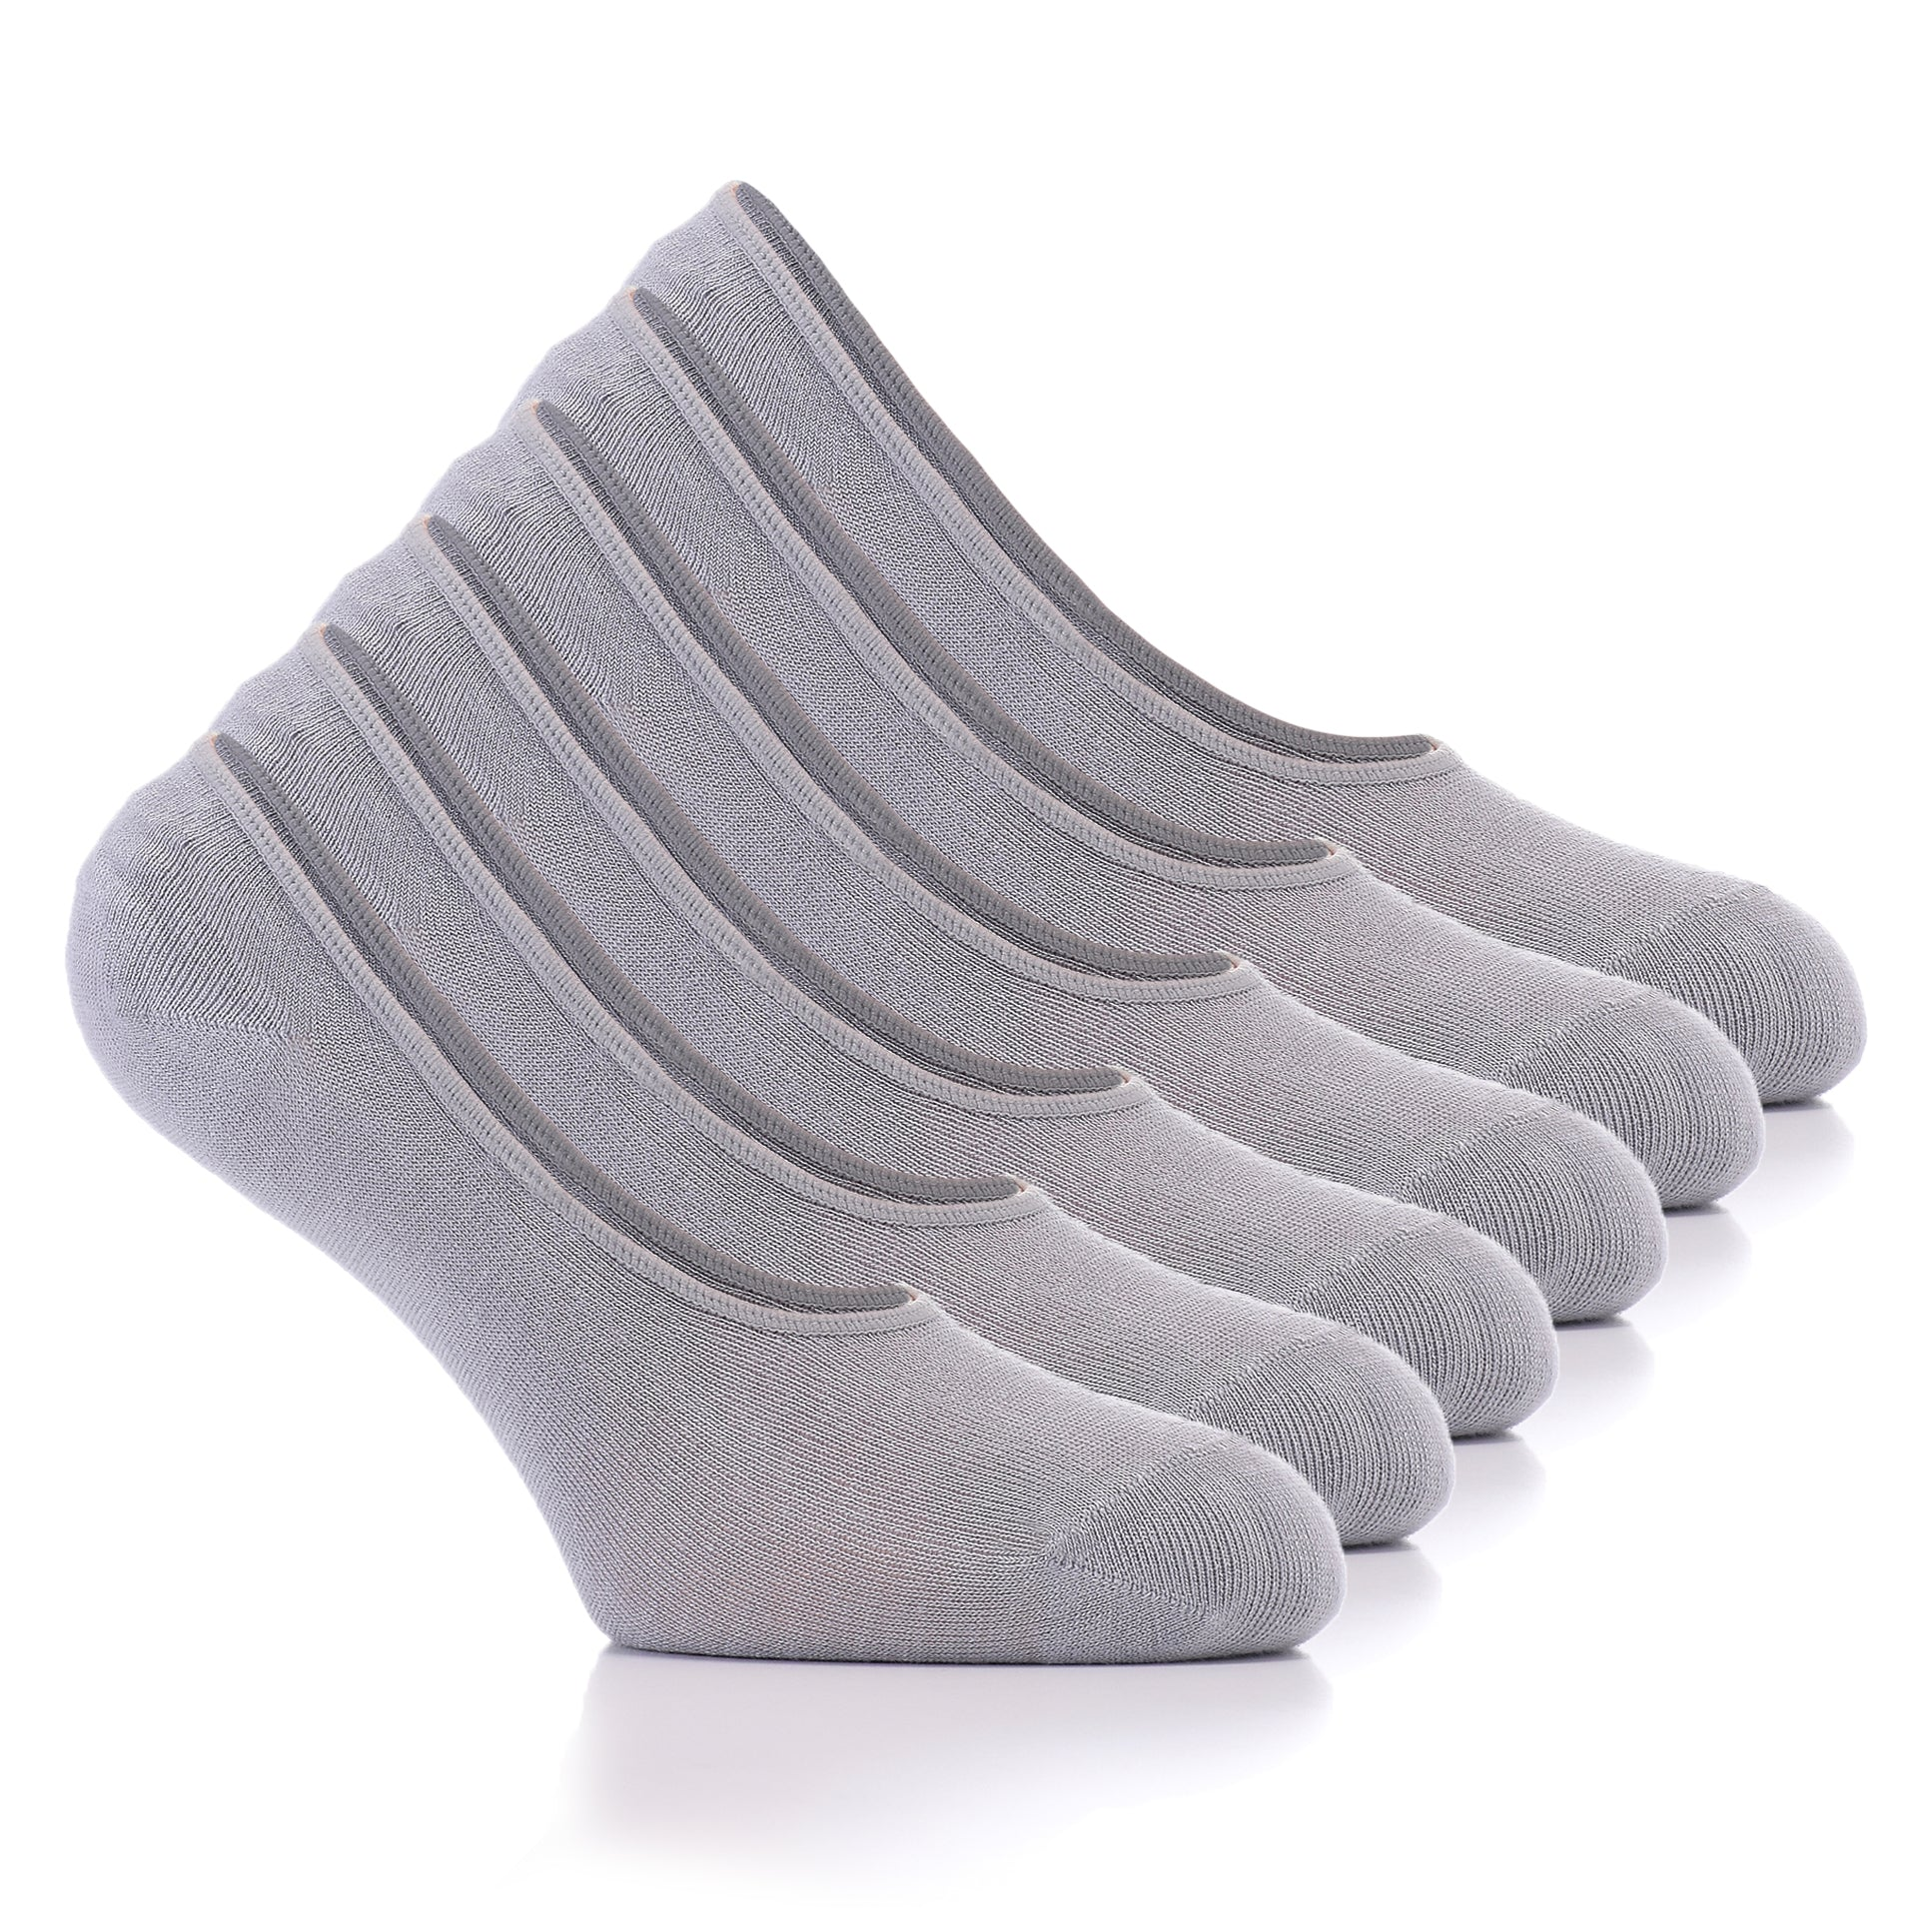 Hugh Ugoli Women's No Show Liner Socks Bamboo Viscose Thin Casual Seamless Toe Socks, 6 Pairs, Shoe Size: 6-9